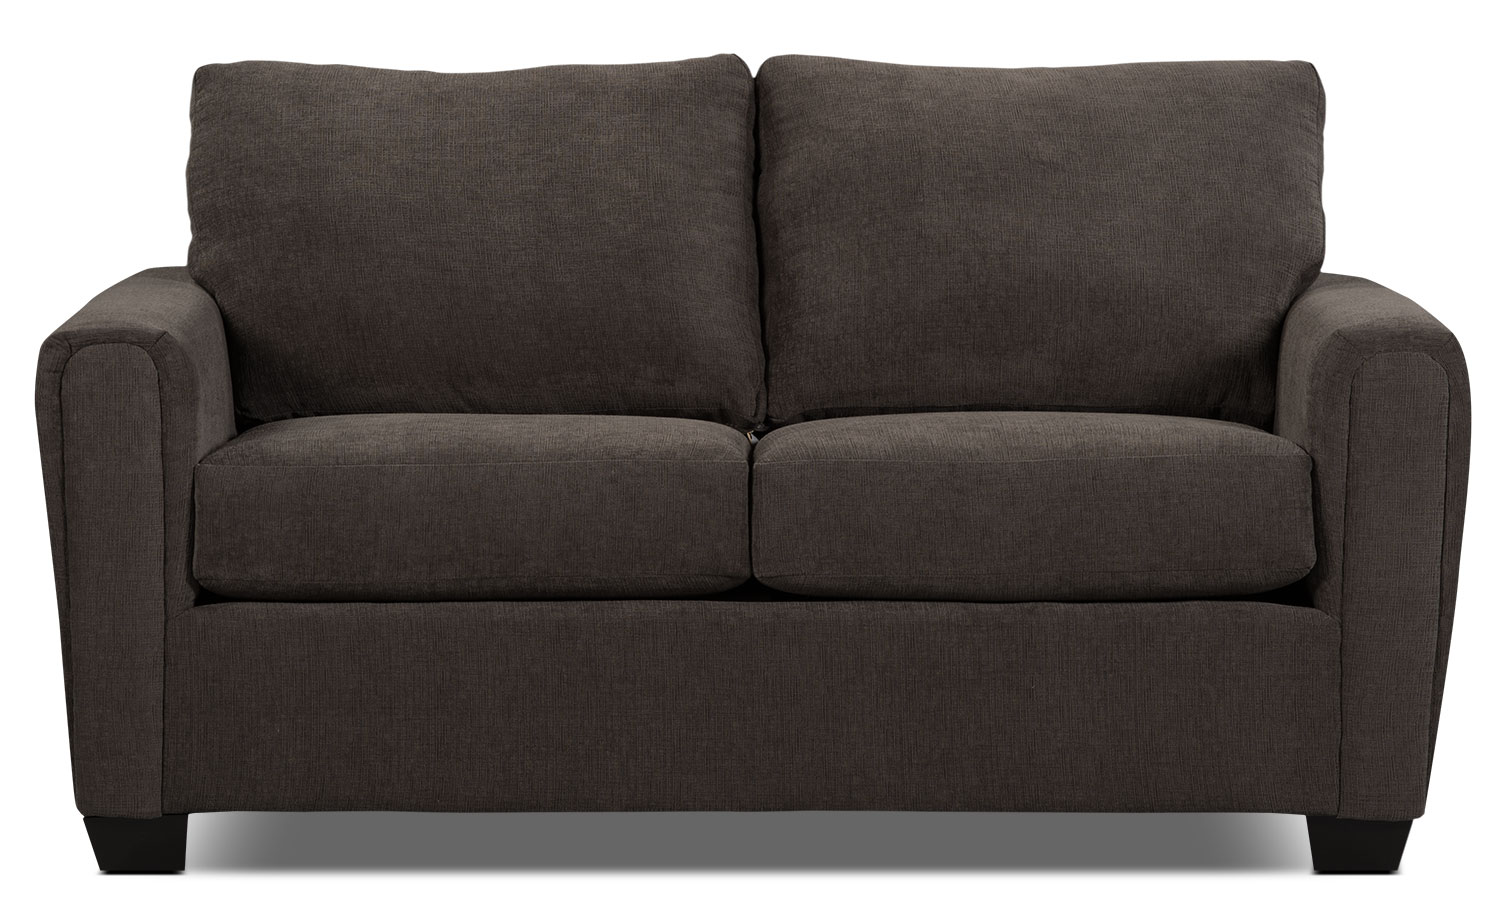 Spa Collection Chenille Full Size Sofa Bed With Memory